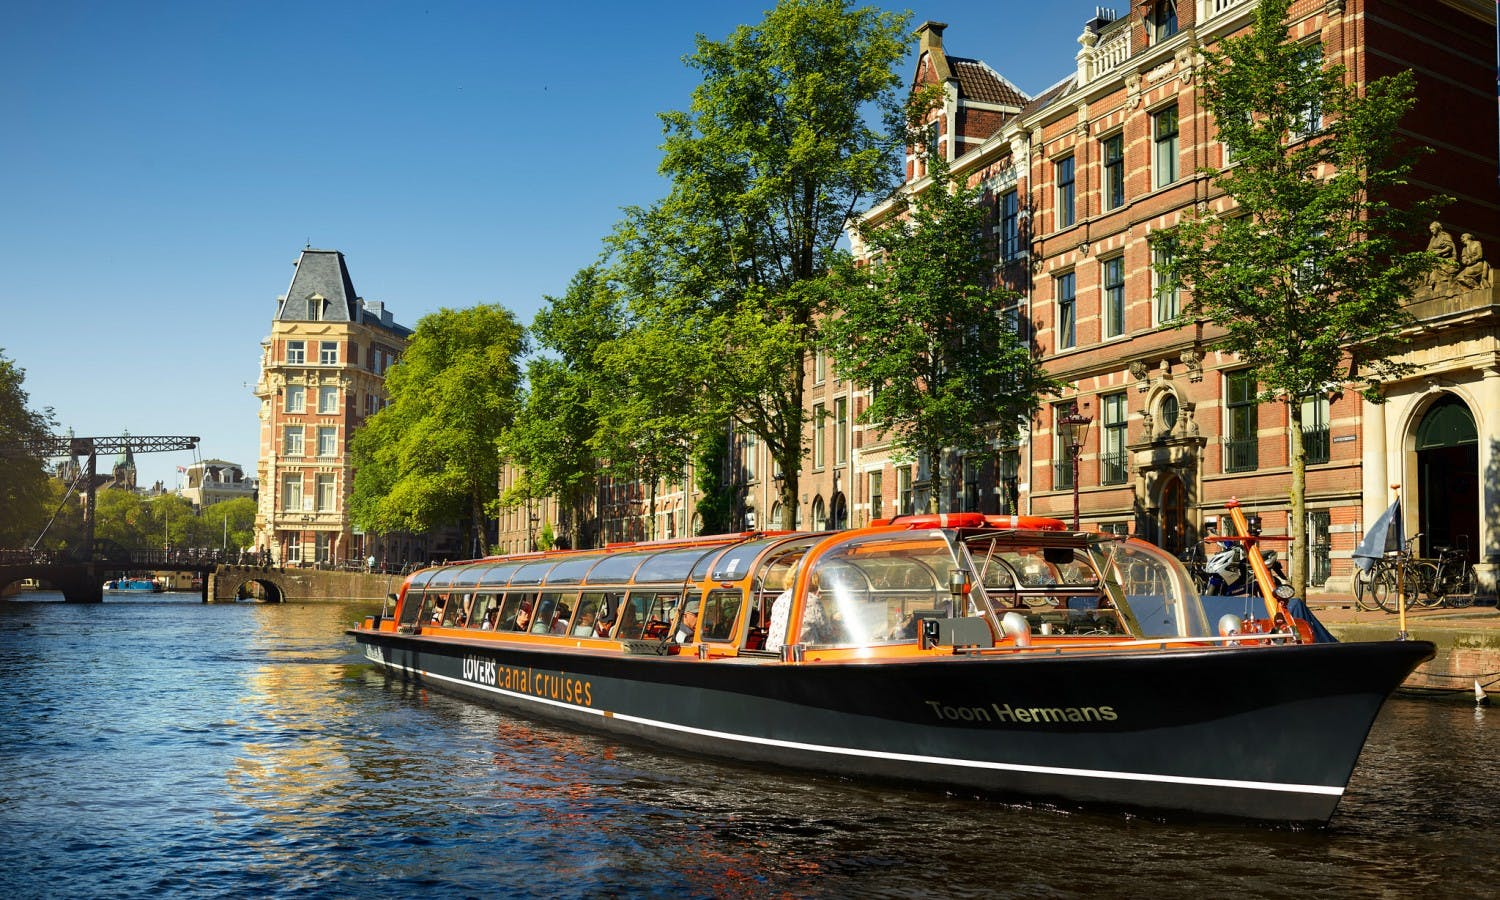 Van Gogh Museum fast-track tickets and canal cruise